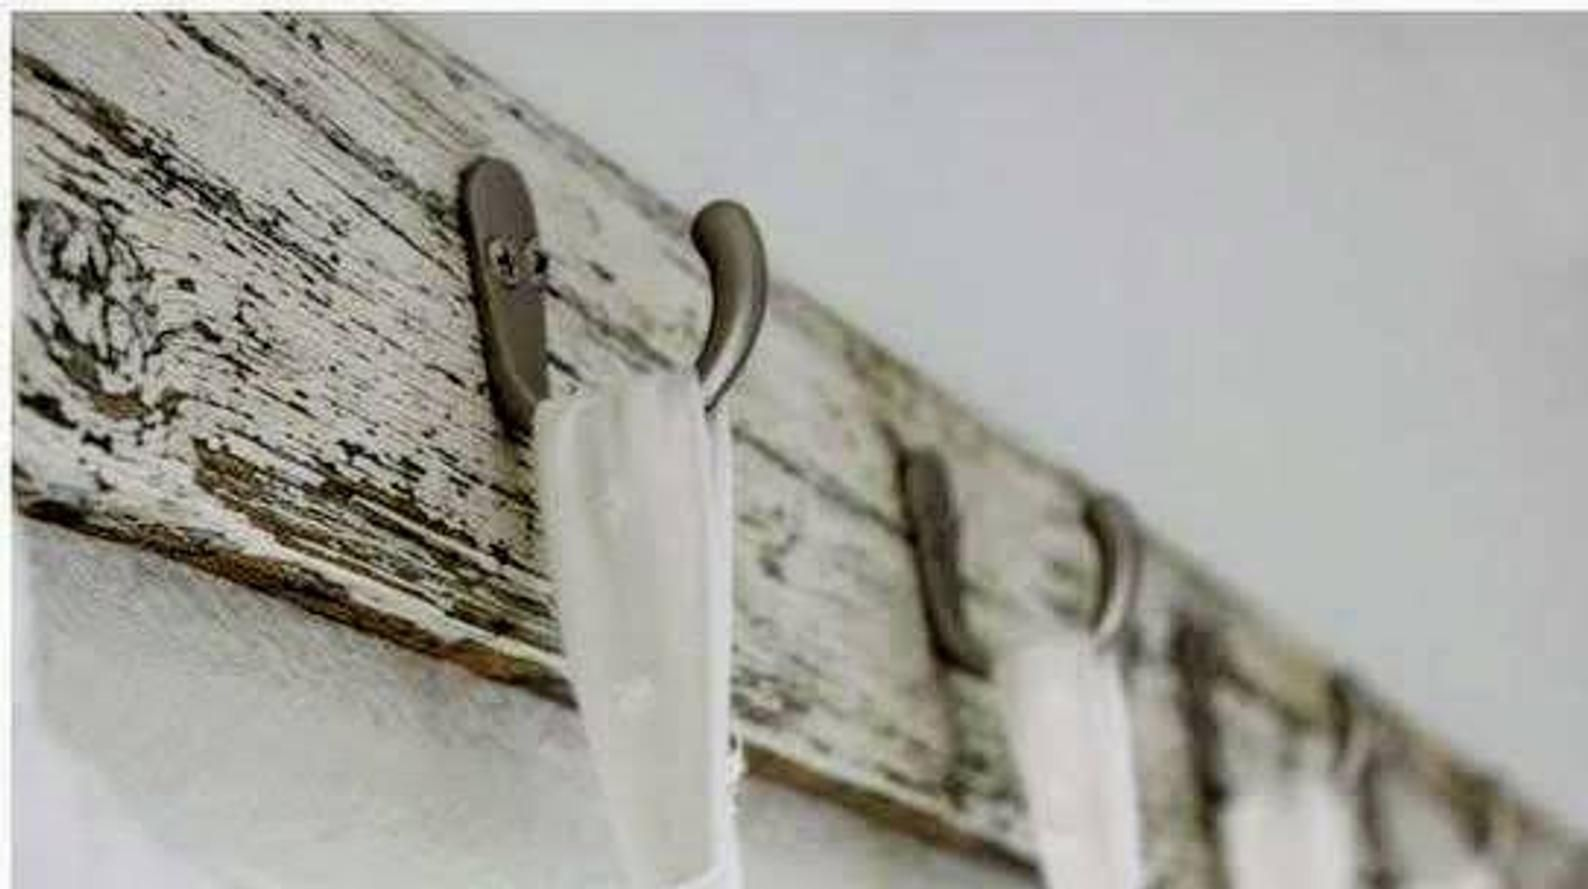 Crackle Chipped Finish On Wood Curtain Hooks Hang Tab Top Curtain